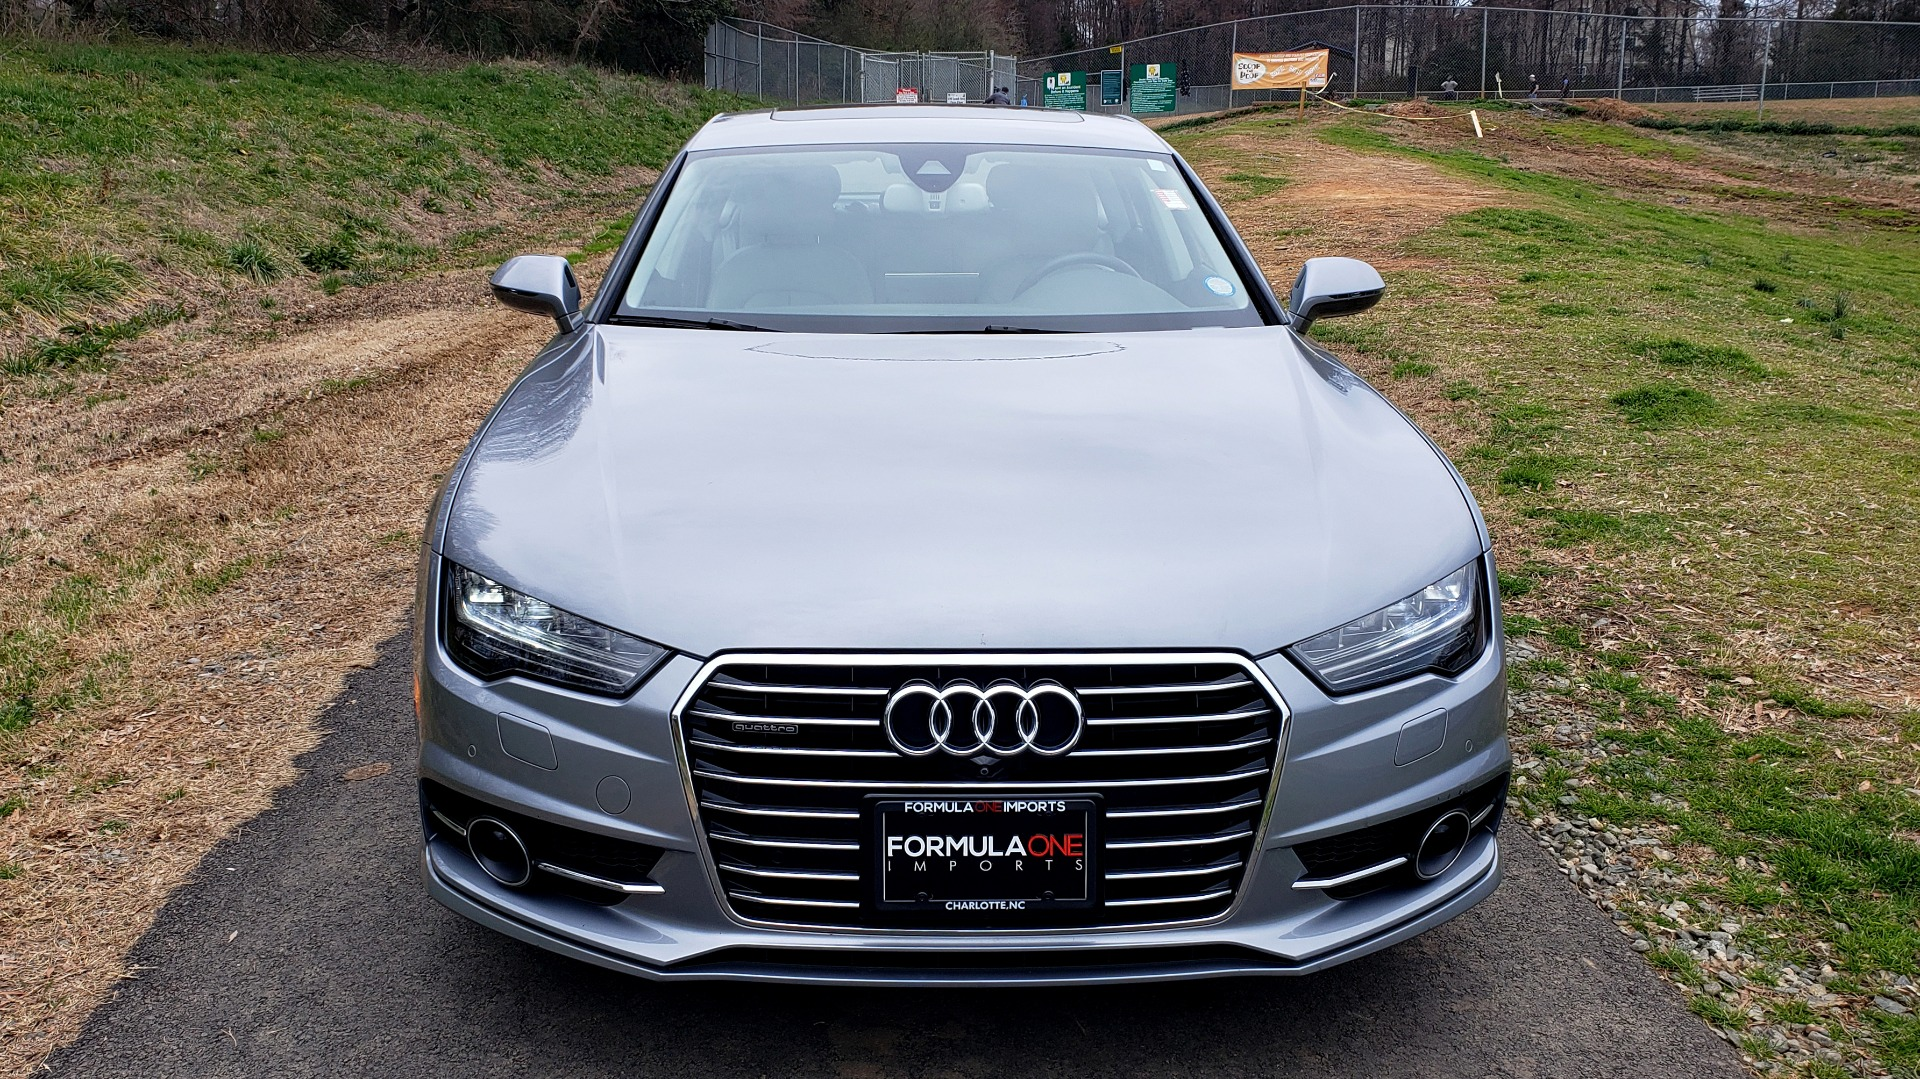 Used 2017 Audi A7 PREMIUM PLUS / NAV / ADAPT CUISE / DRVR ASST / BOSE / REARVIEW for sale Sold at Formula Imports in Charlotte NC 28227 10